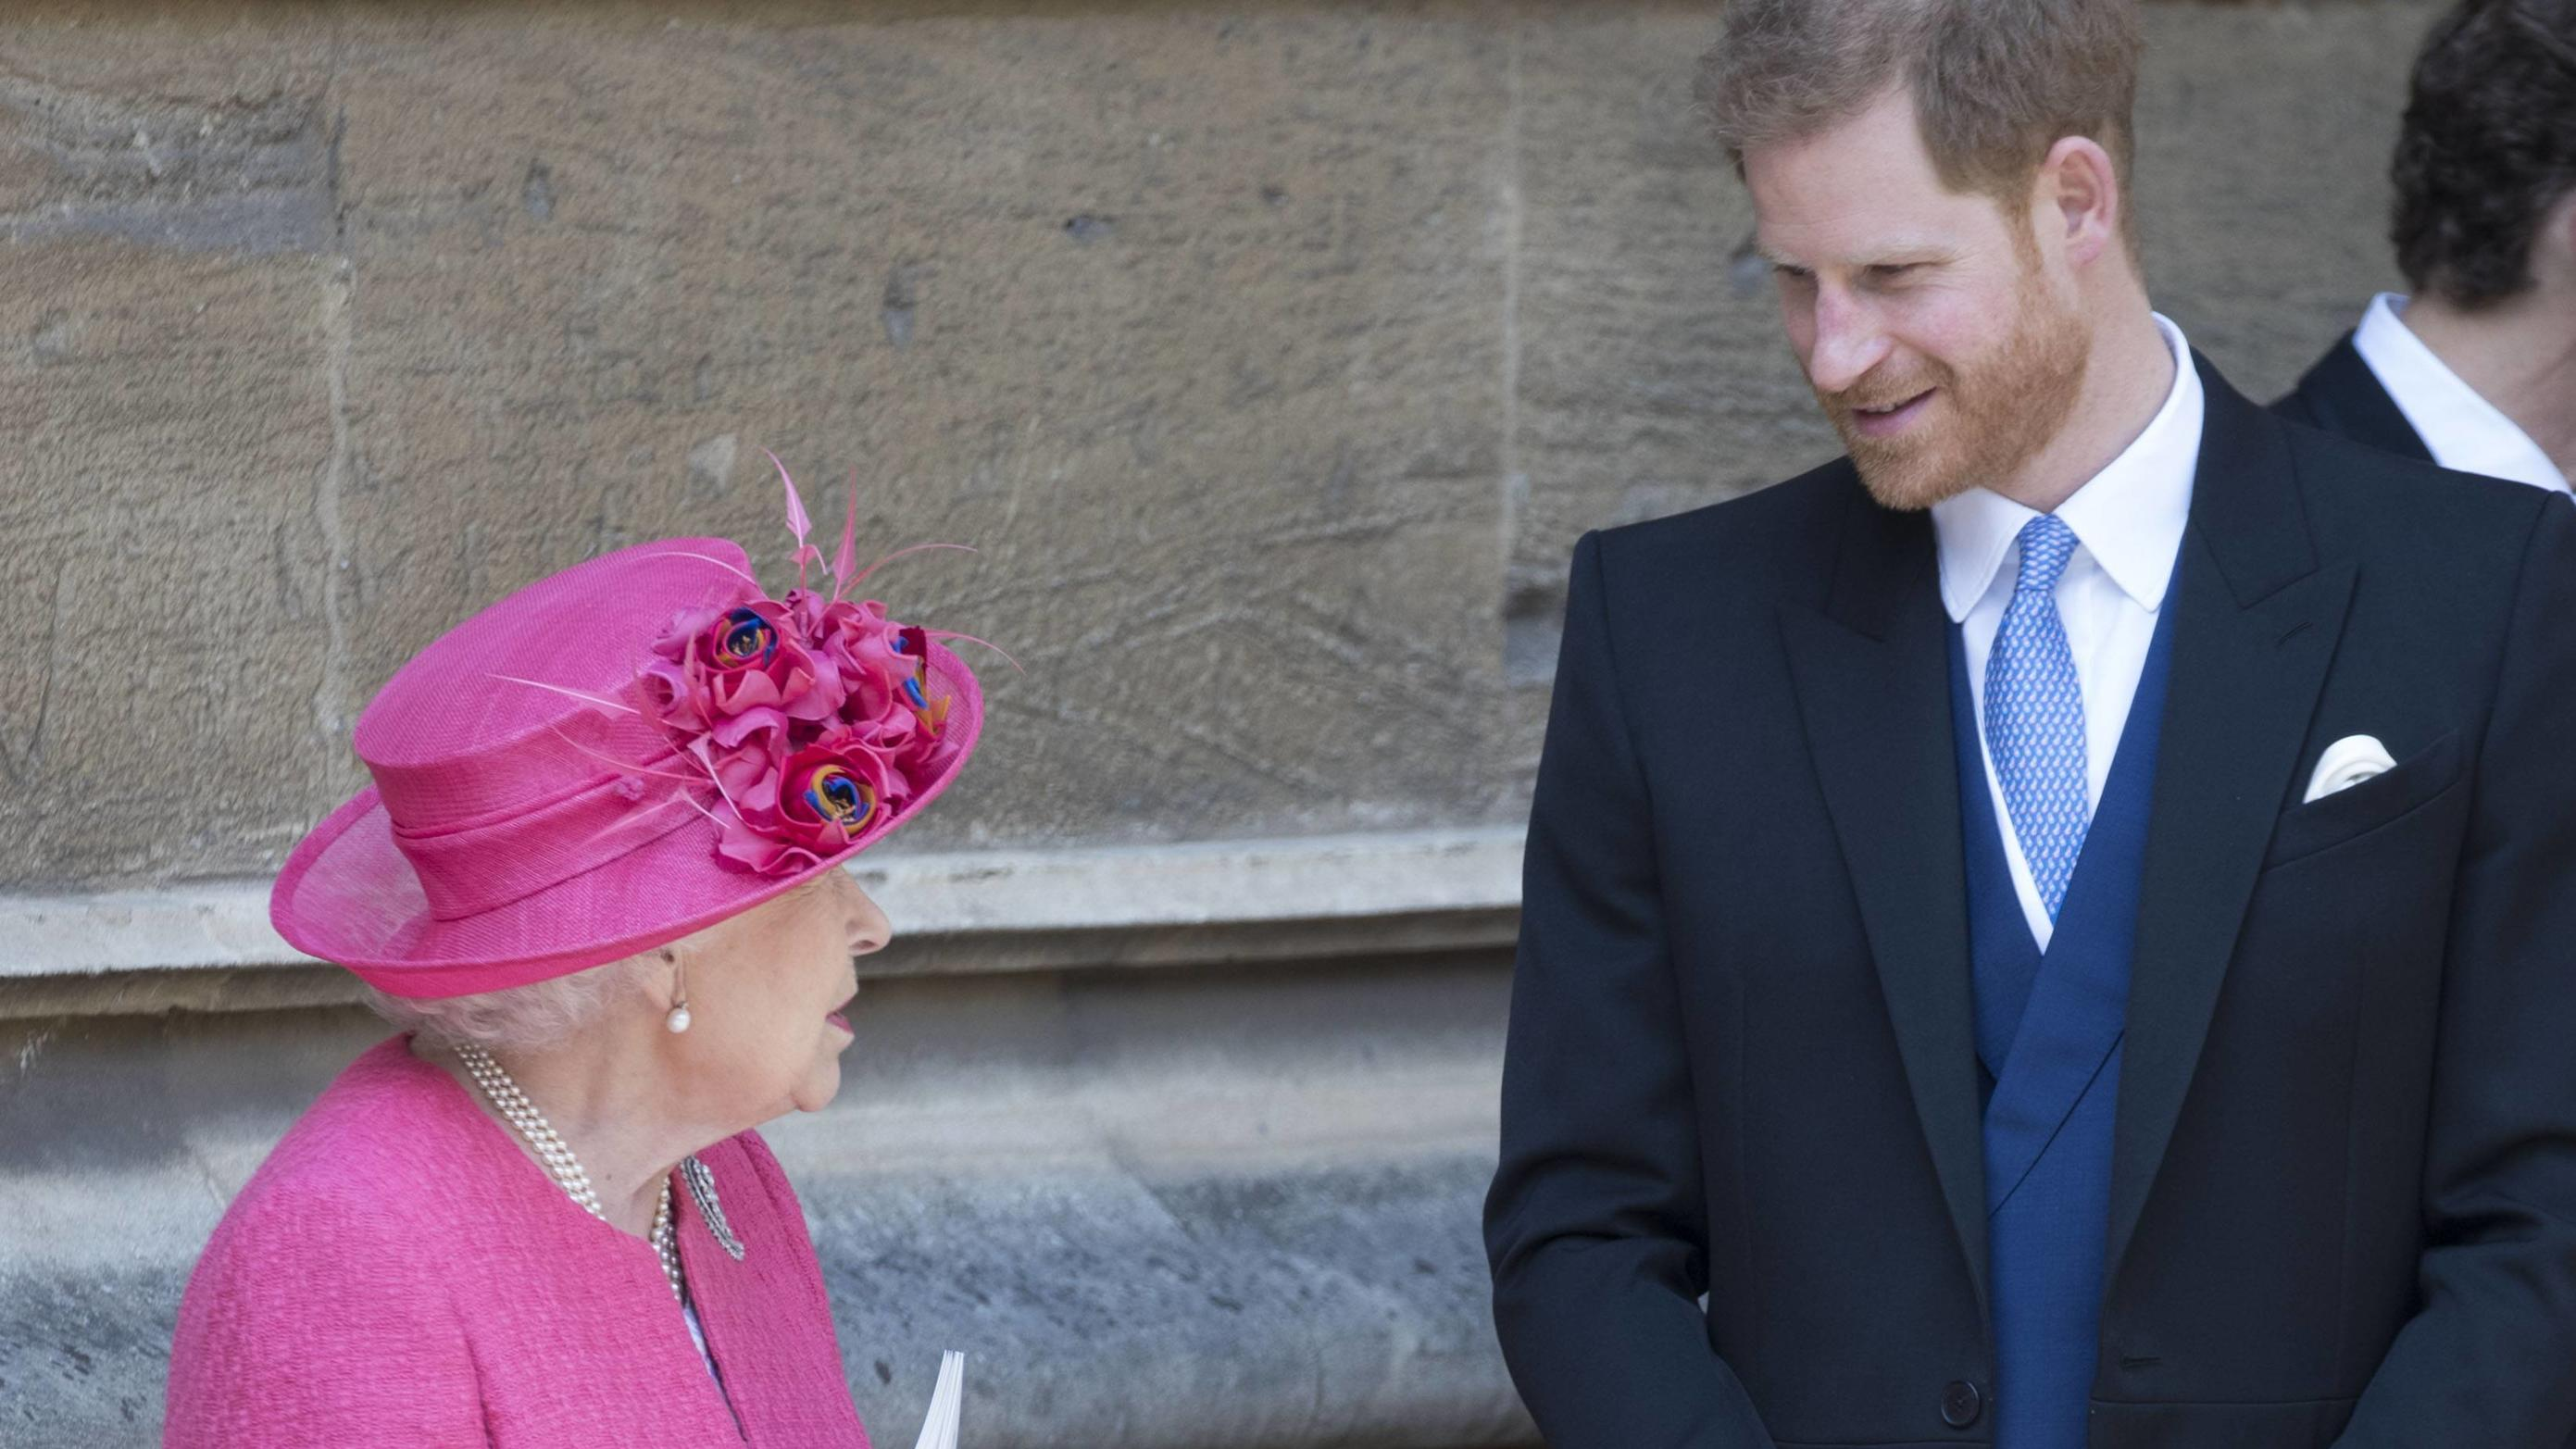 . 18/05/2019. Windsor , United Kingdom. Queen Elizabeth II and Prince Harry, Duke of Sussex leaving the Lady Gabriella Windsor wedding at St.George s Chapel, Windsor, United Kingdom. PUBLICATIONxINxGERxSUIxAUTxHUNxONLY xStephenxLockx/xi-Imagesx IIM-